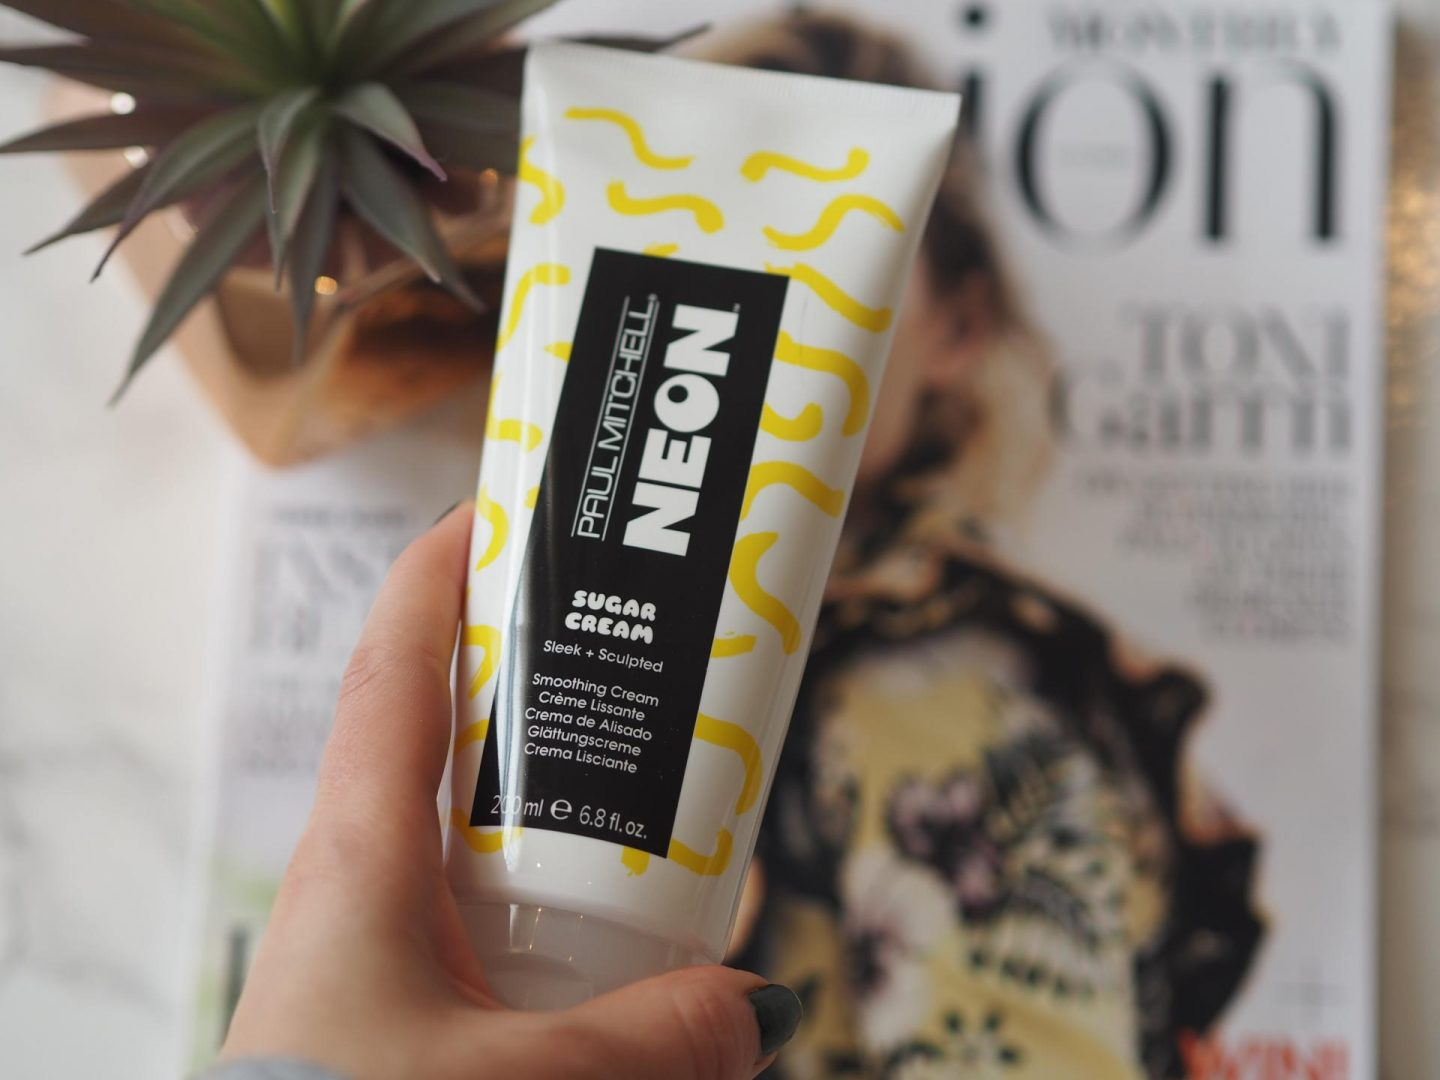 October Lookfantastic Beauty Haul - Product: Paul Mitchell Neon Sugar Cream Smoothing Cream